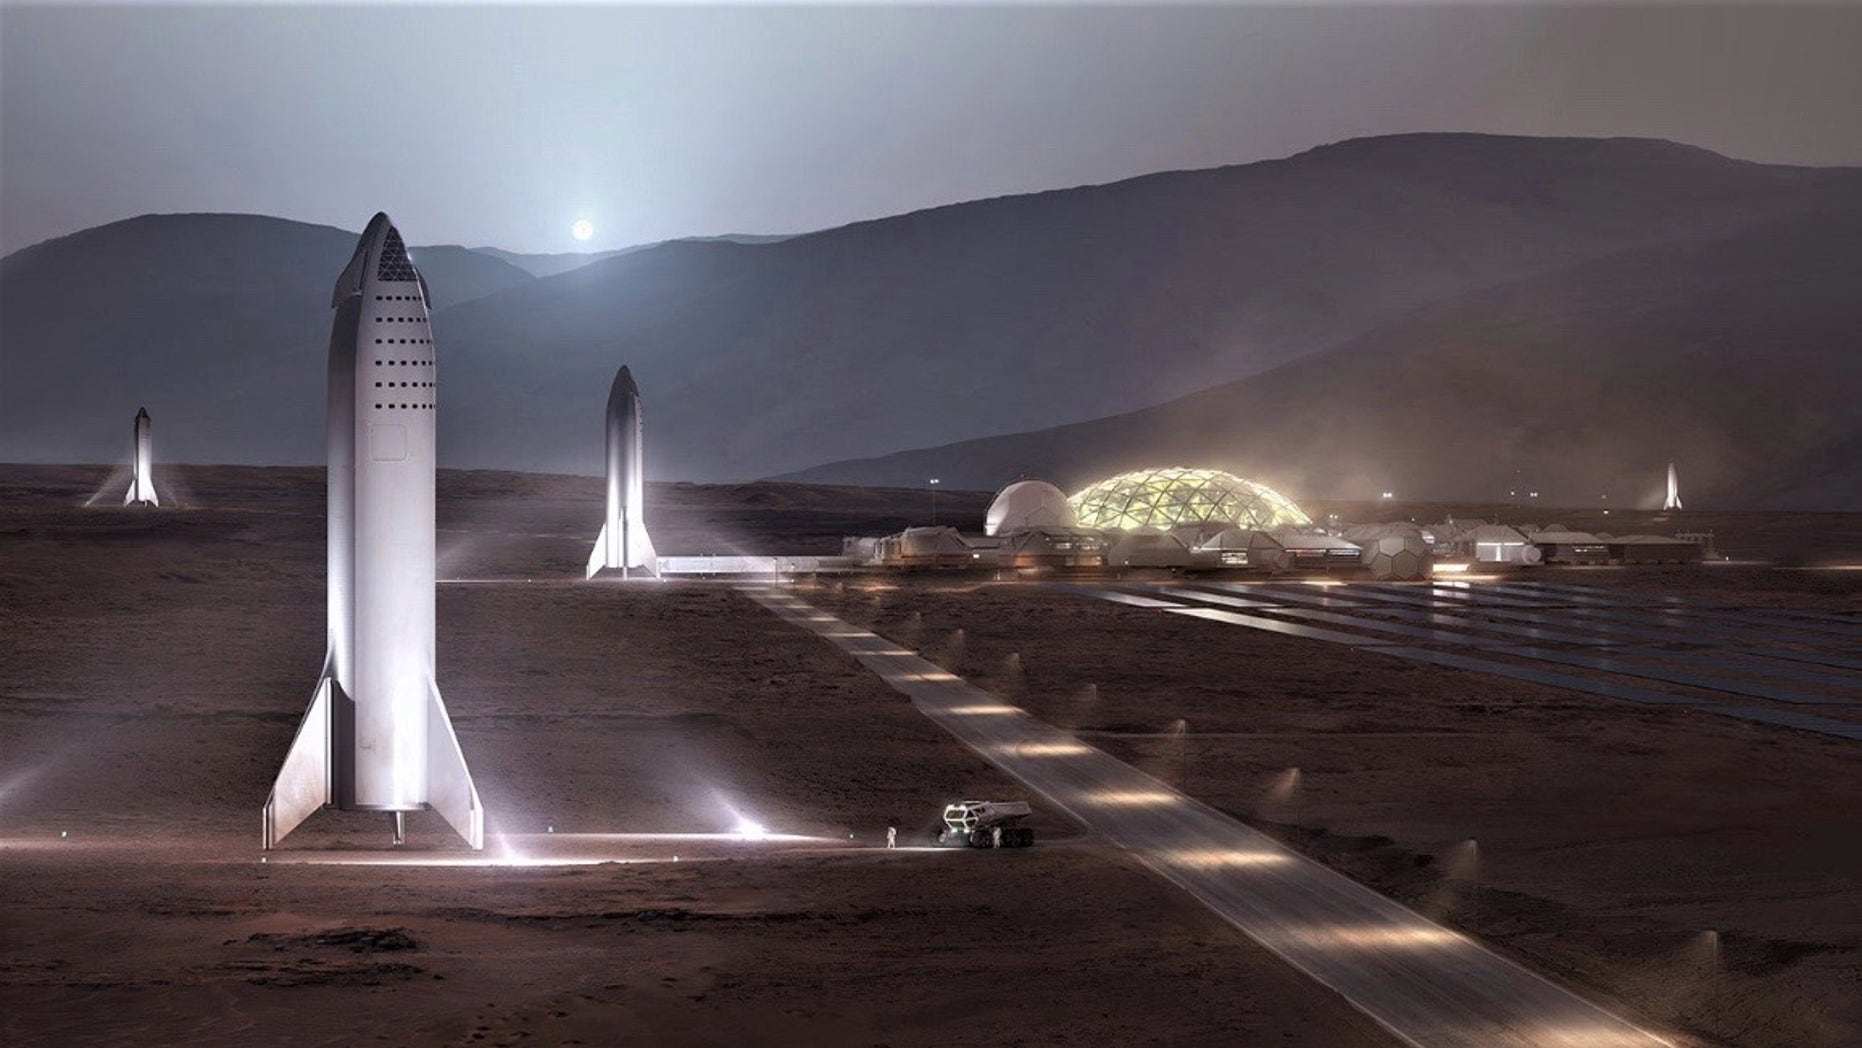 """An artist's illustration showing SpaceX BFR spaceships standing at the Red Planet outpost """"Mars Base Alpha."""""""